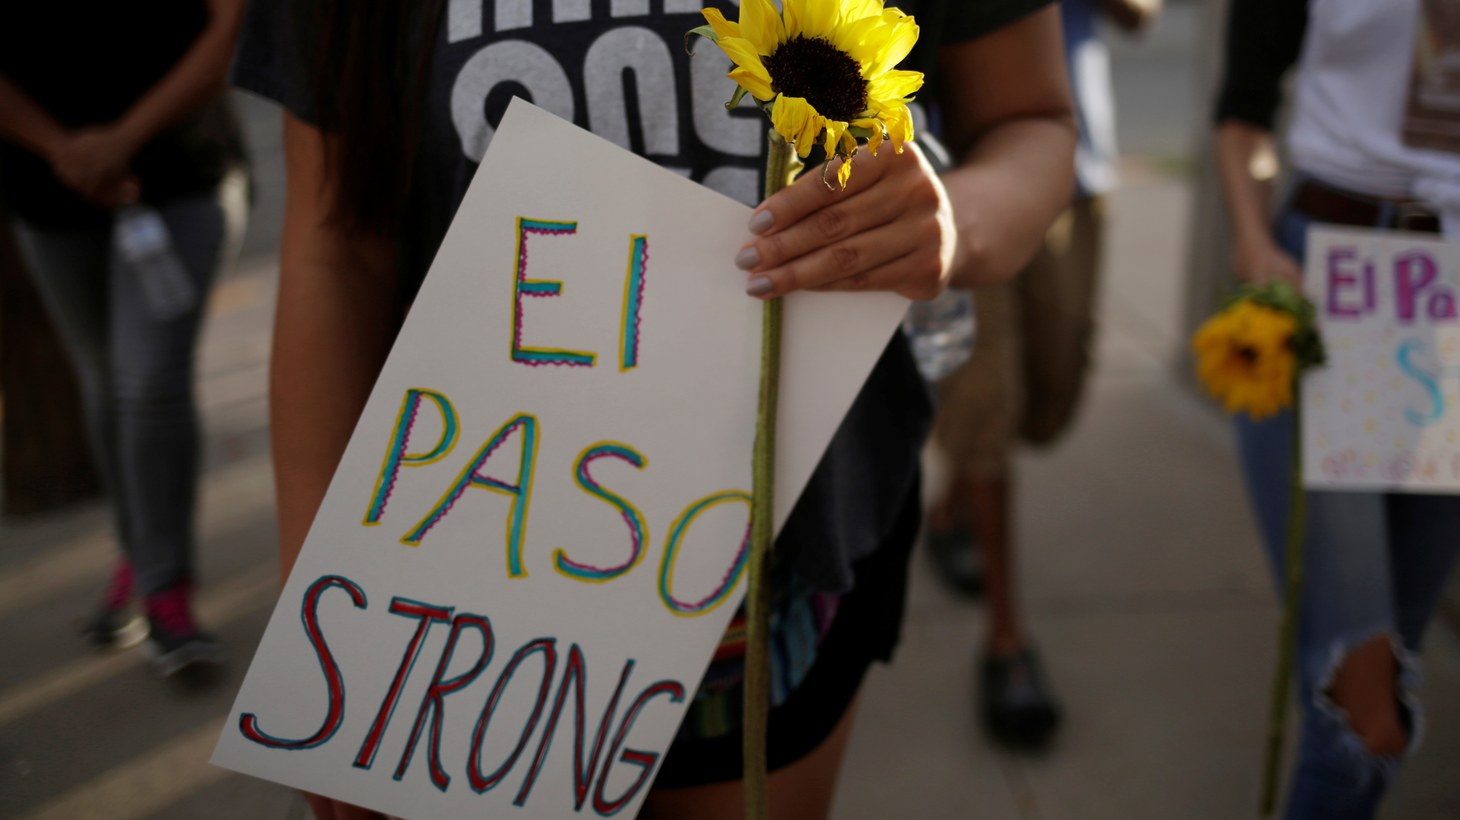 People take part in a rally against hate a day after a mass shooting at a Walmart store, in El Paso, Texas, U.S. August 4, 2019.